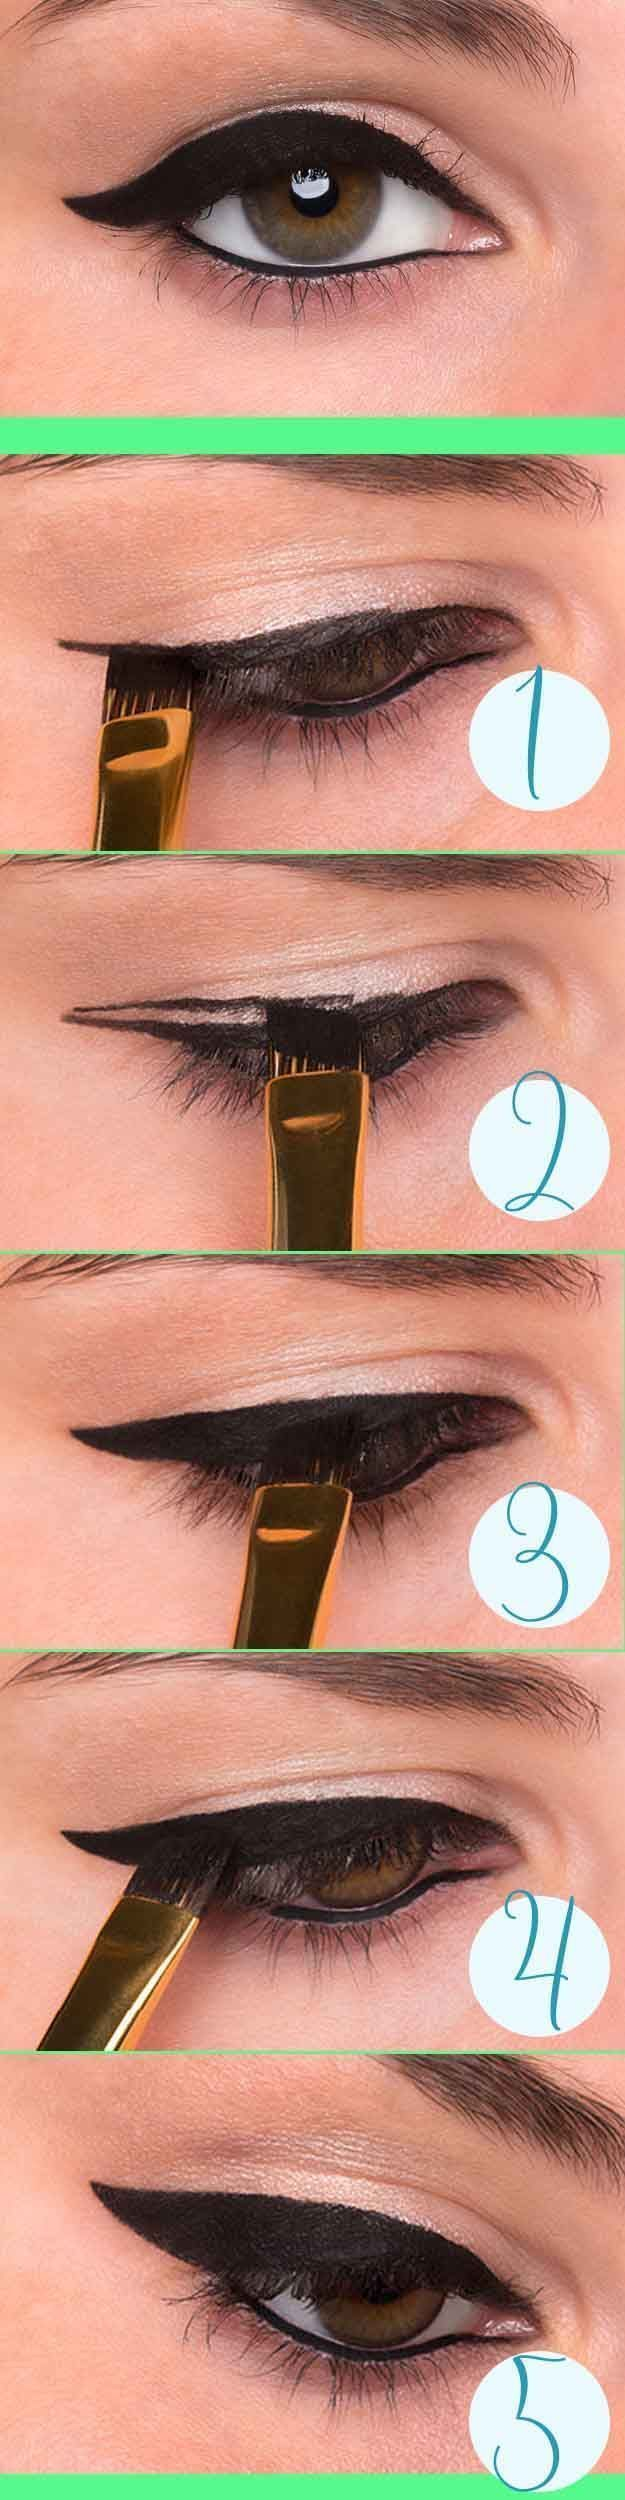 25 Must Know Eyeliner Hacks -How to Do Winged Eyeliner -Winged Looks and Easy Makeup Tricks and Guides for Liquid Pencil and Gel Styles. Step by Step Tutorials with Pictures using Tape or a Spoon thegoddess.com/eyeliner-hacks #wingedlinereasy #wingedlinerhacks